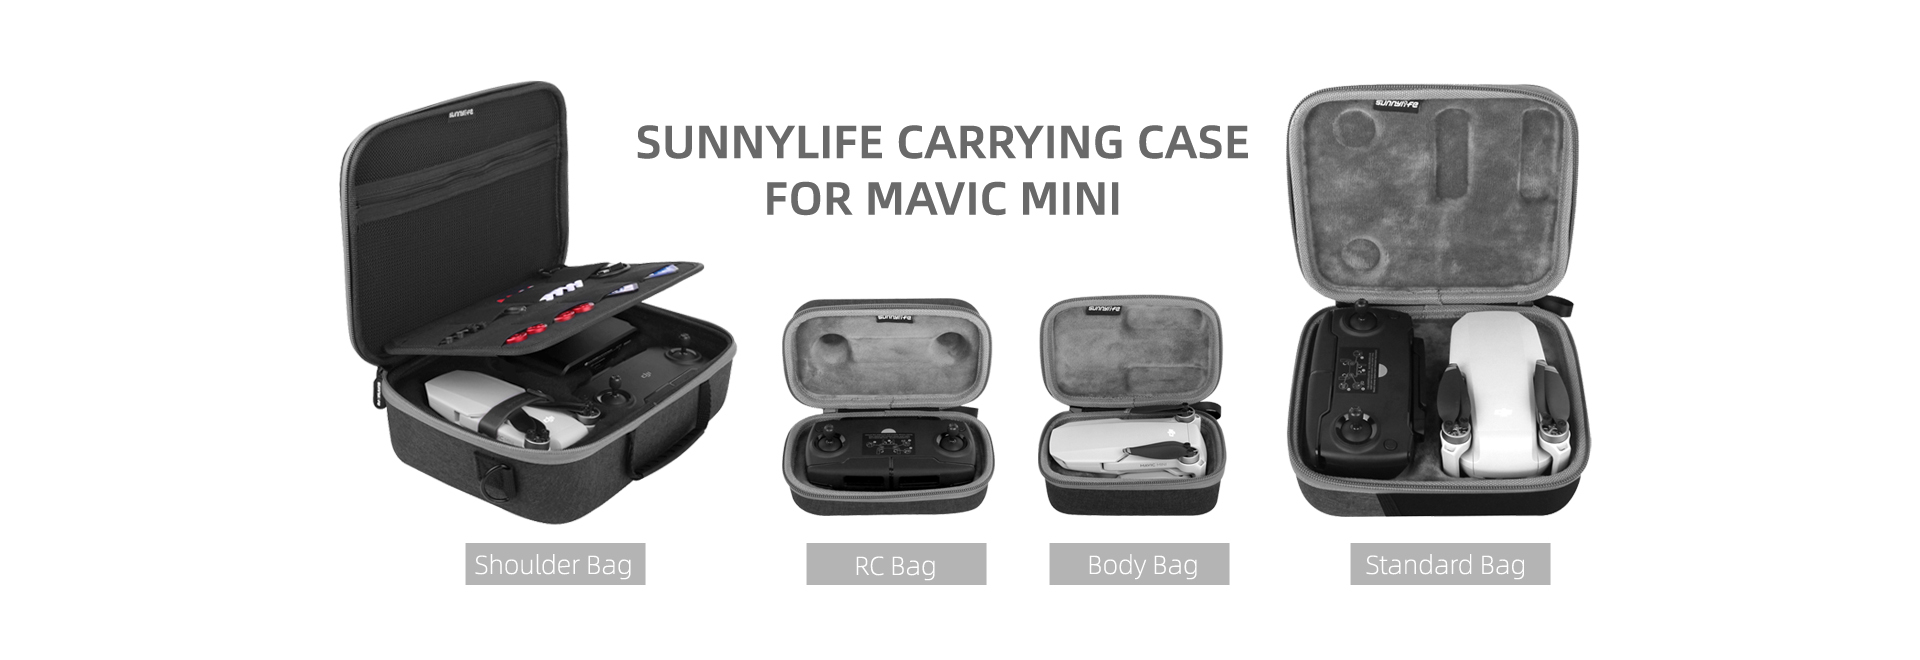 Carrying Case for Mavic Mini